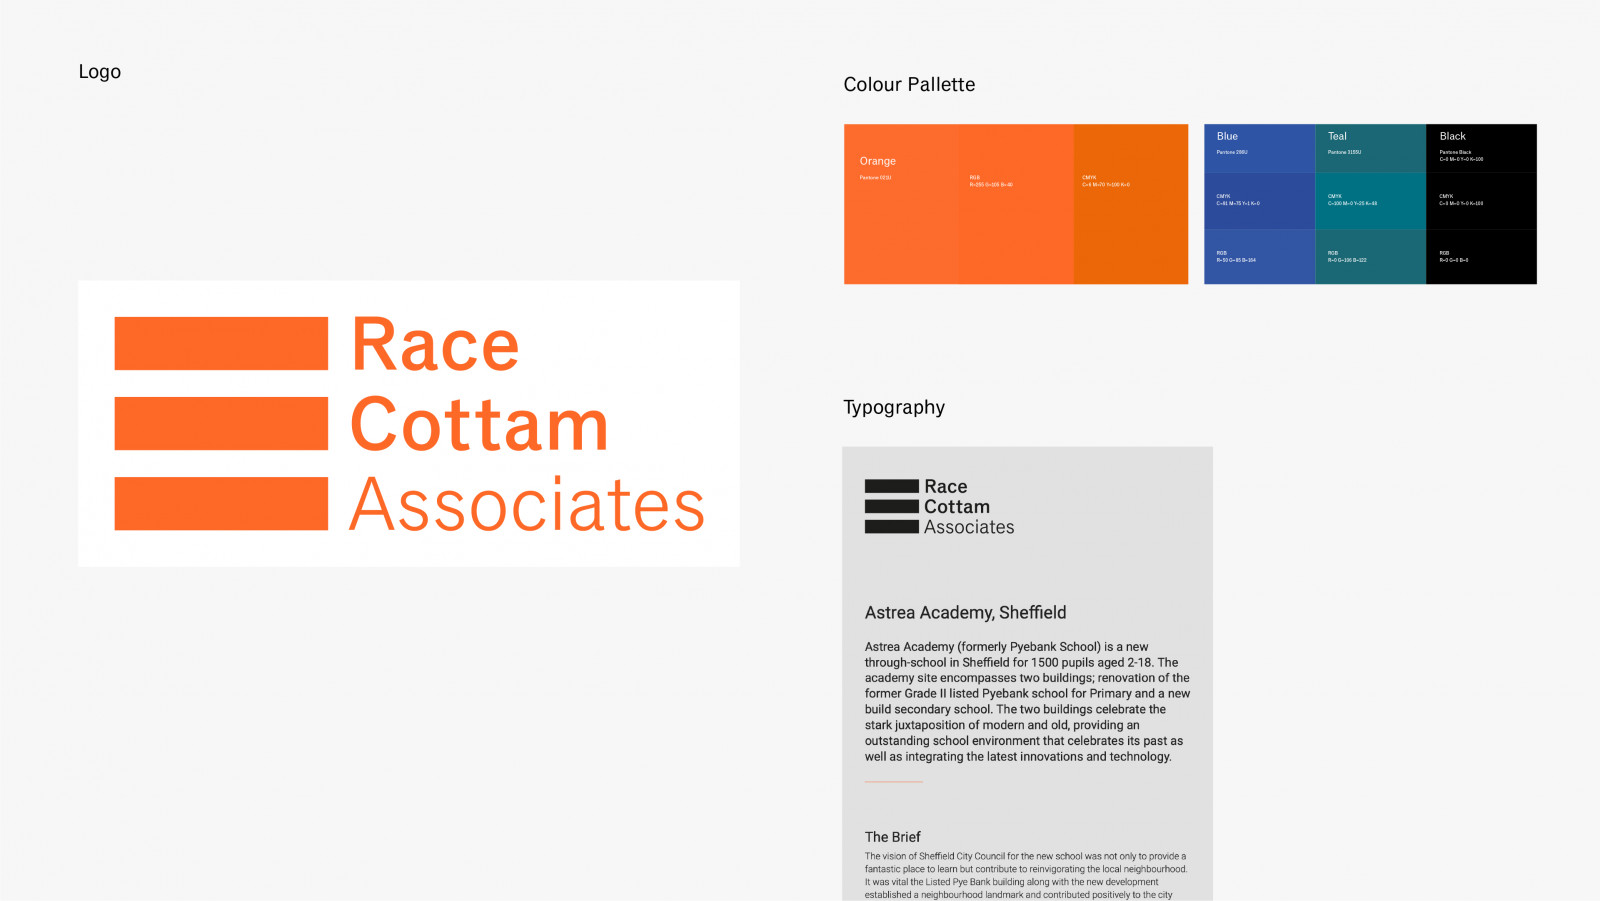 Gallery image for Race Cottam Associates project